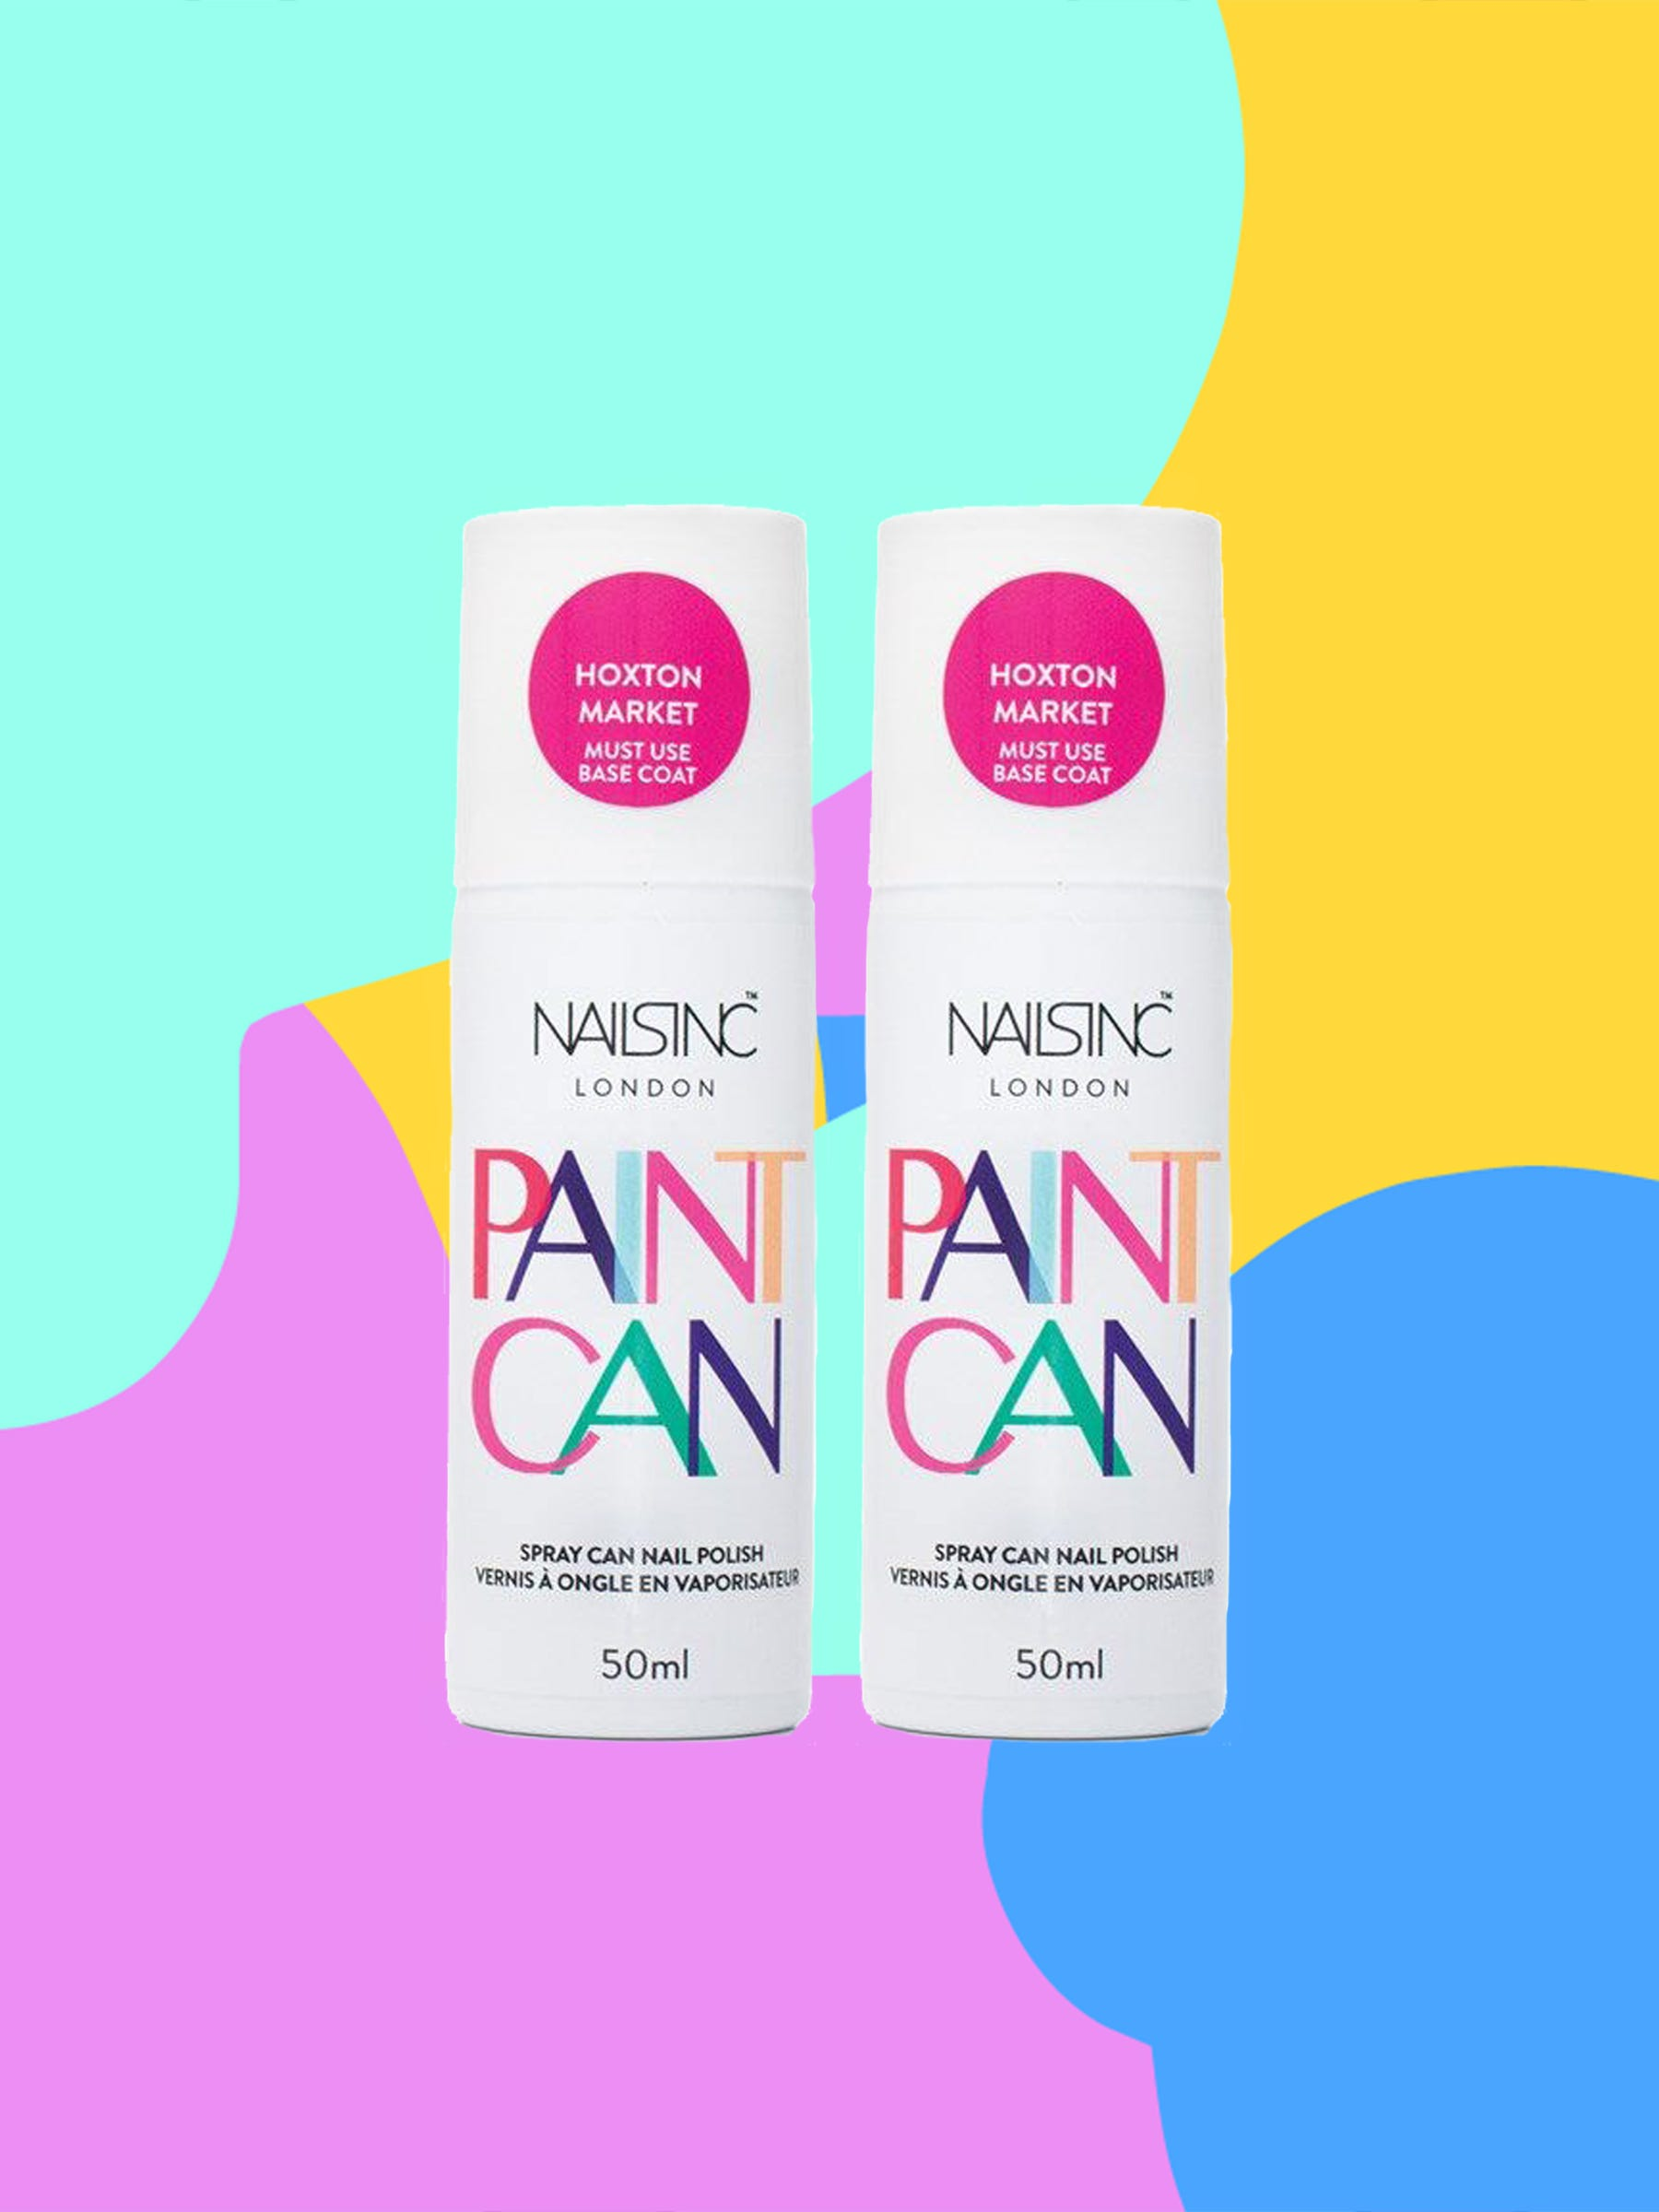 Does it work nails inc paint can spray on nail - Does It Work Nails Inc Paint Can Spray On Nail 62